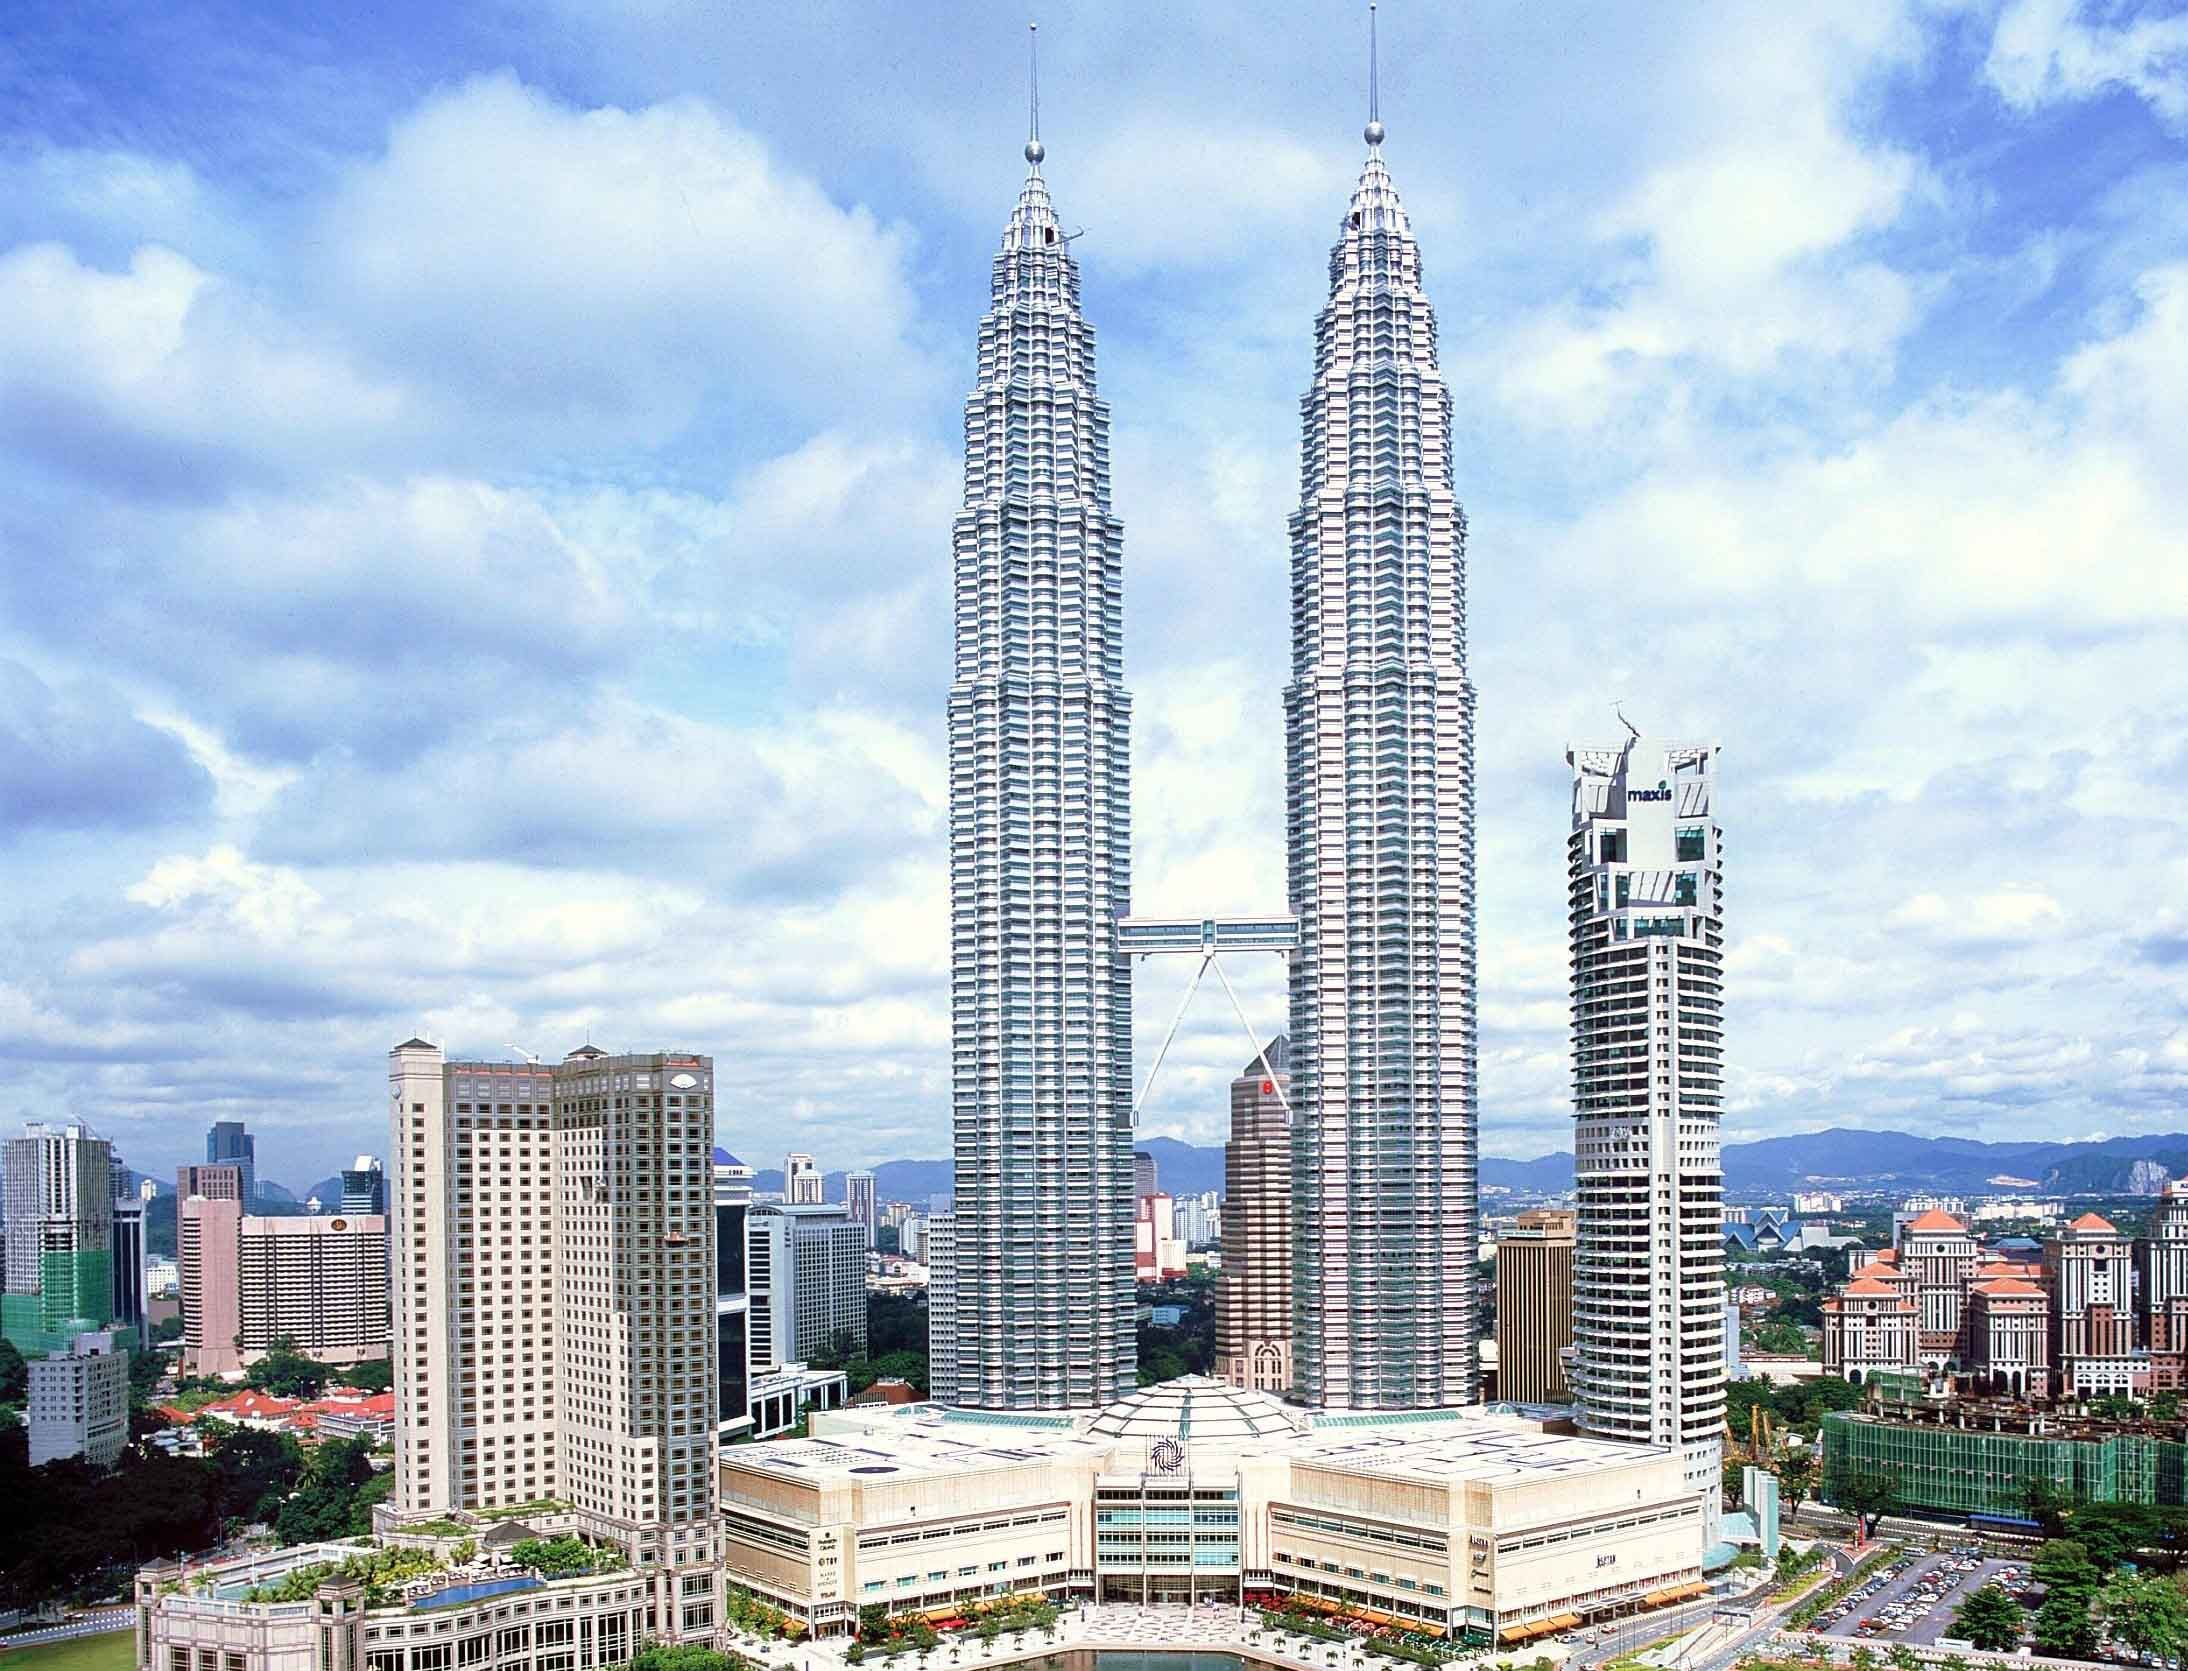 The malaysian petronas tower 1 2 are the 6th 7th tallest the malaysian petronas tower 1 2 are the 6th 7th tallest building in the buycottarizona Gallery